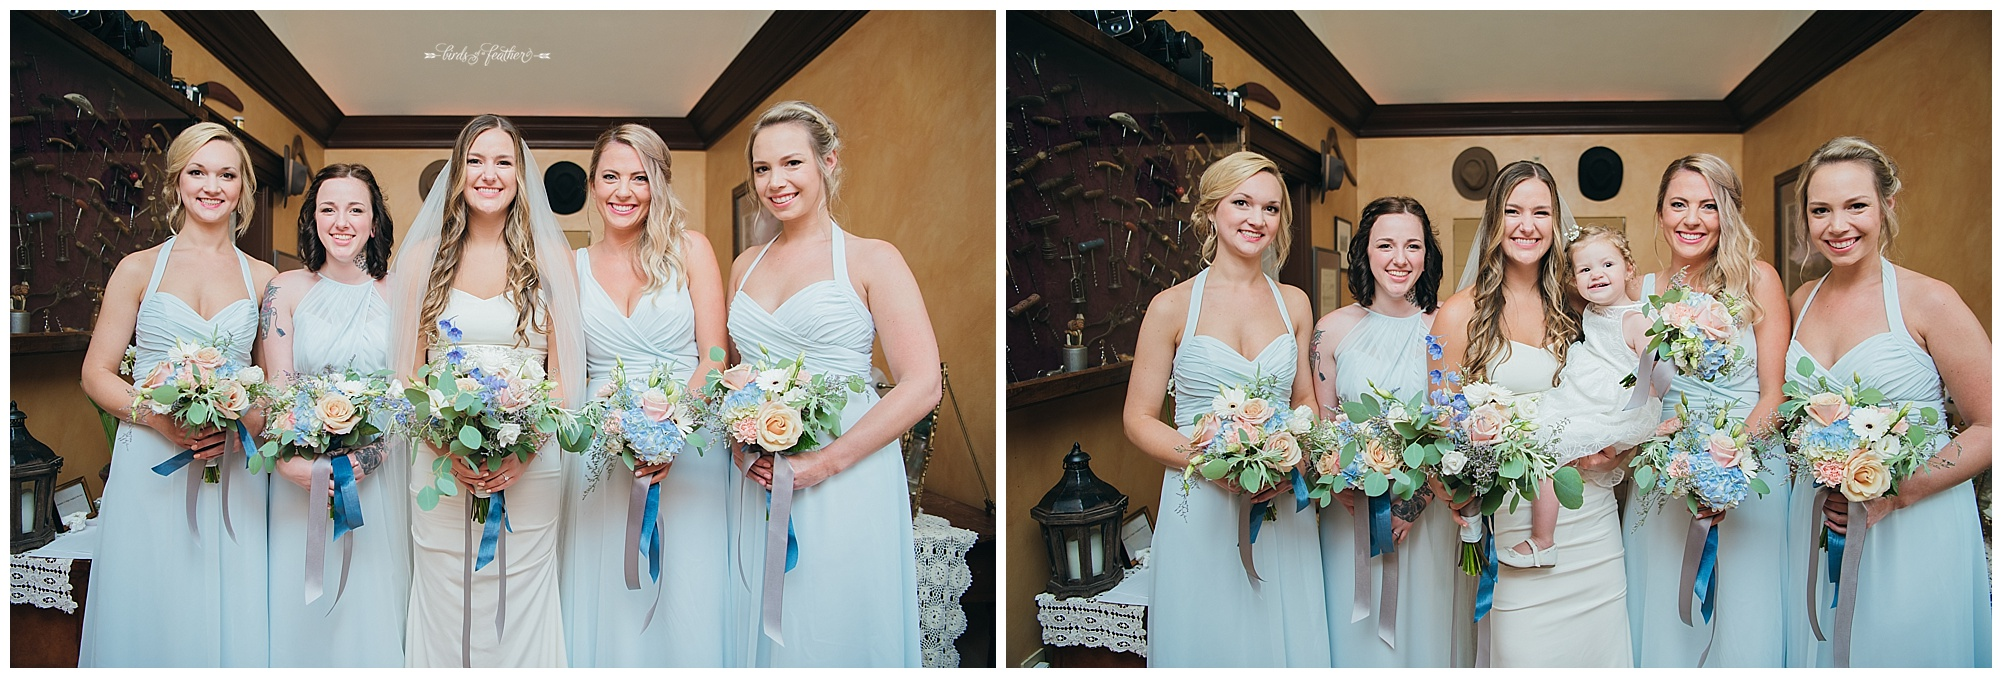 Birds of a Feather Photography, Monterre Vineyards Wedding, Orefield Pa, Wedding Photography, Wedding Photographer